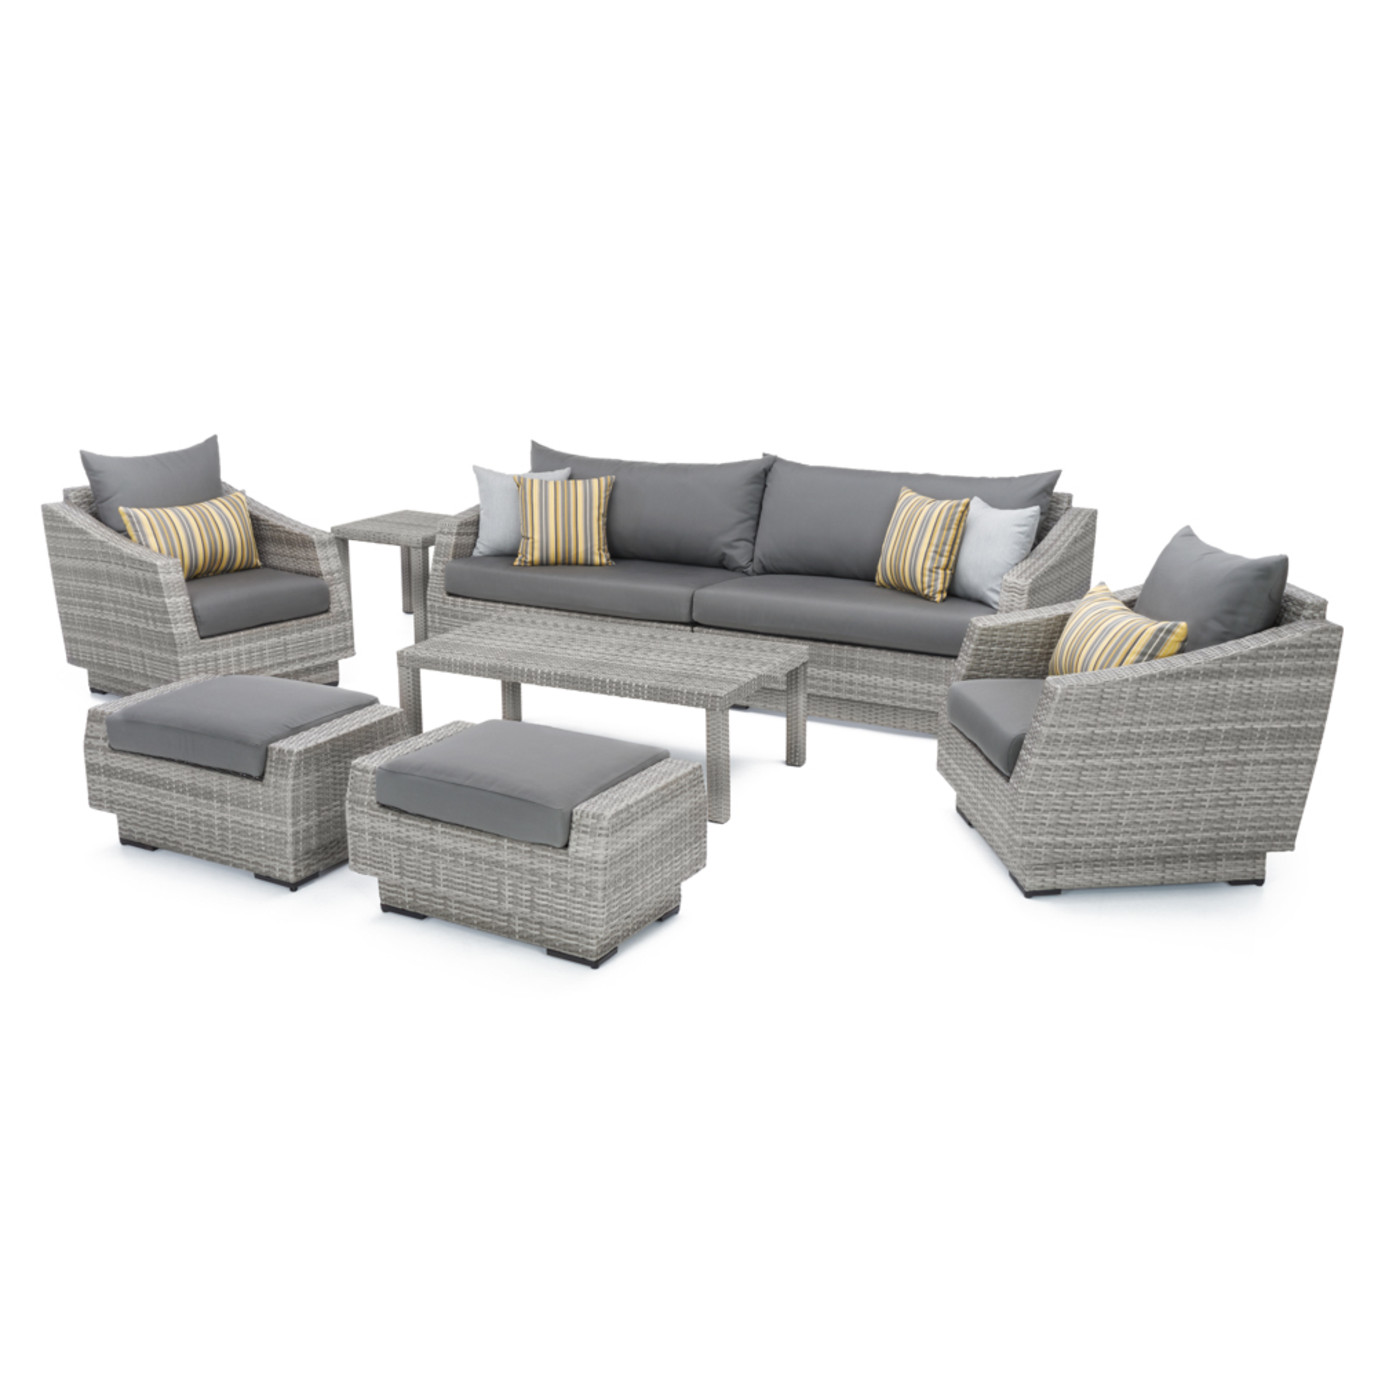 Cannes™ 8pc Sofa Set with Furniture Covers - Charcoal Grey